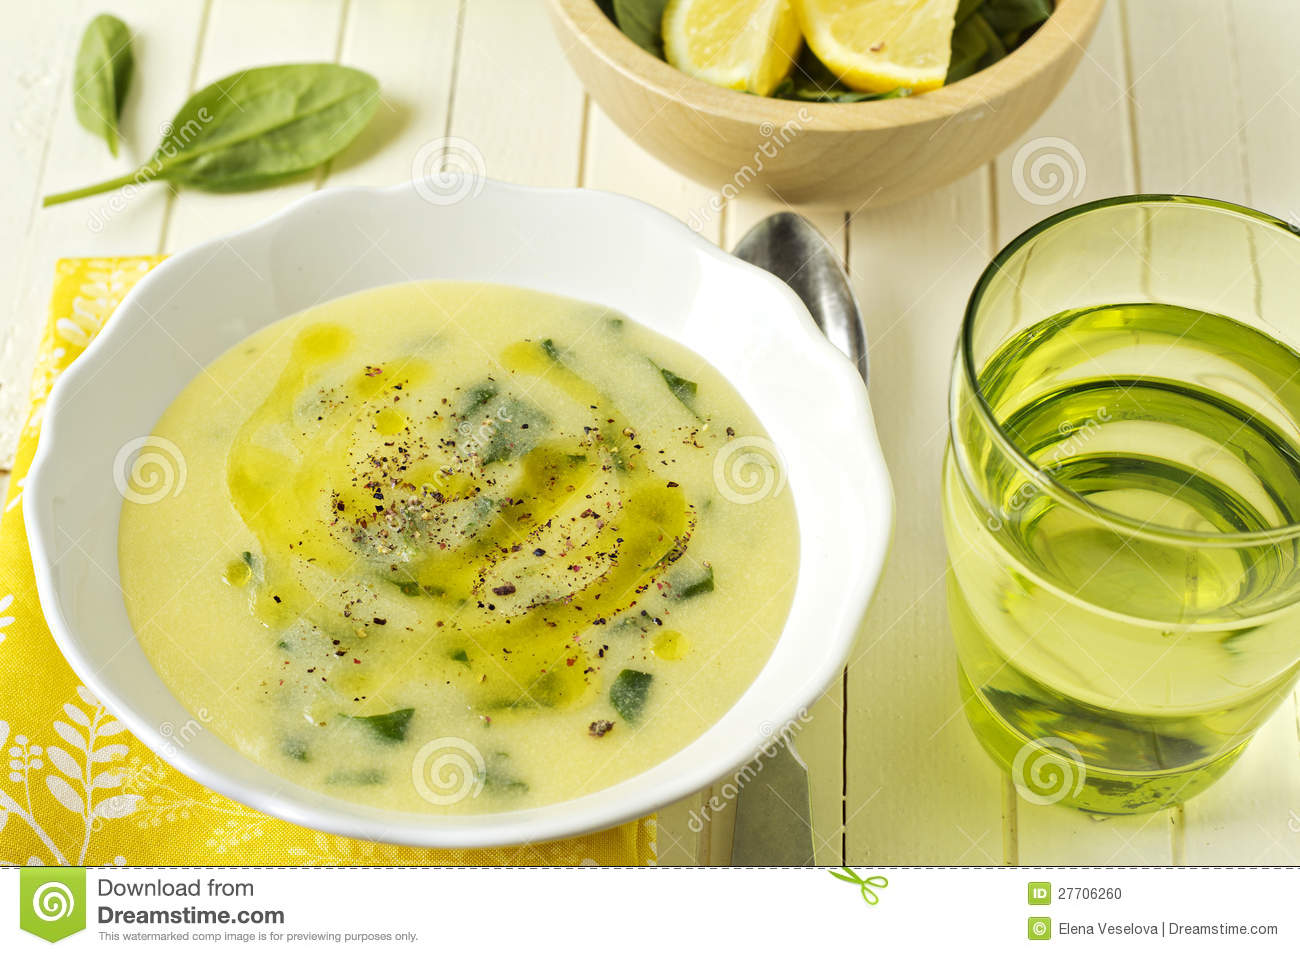 Cornmeal Spinach Cream Soup Stock Photo - Image: 27706260